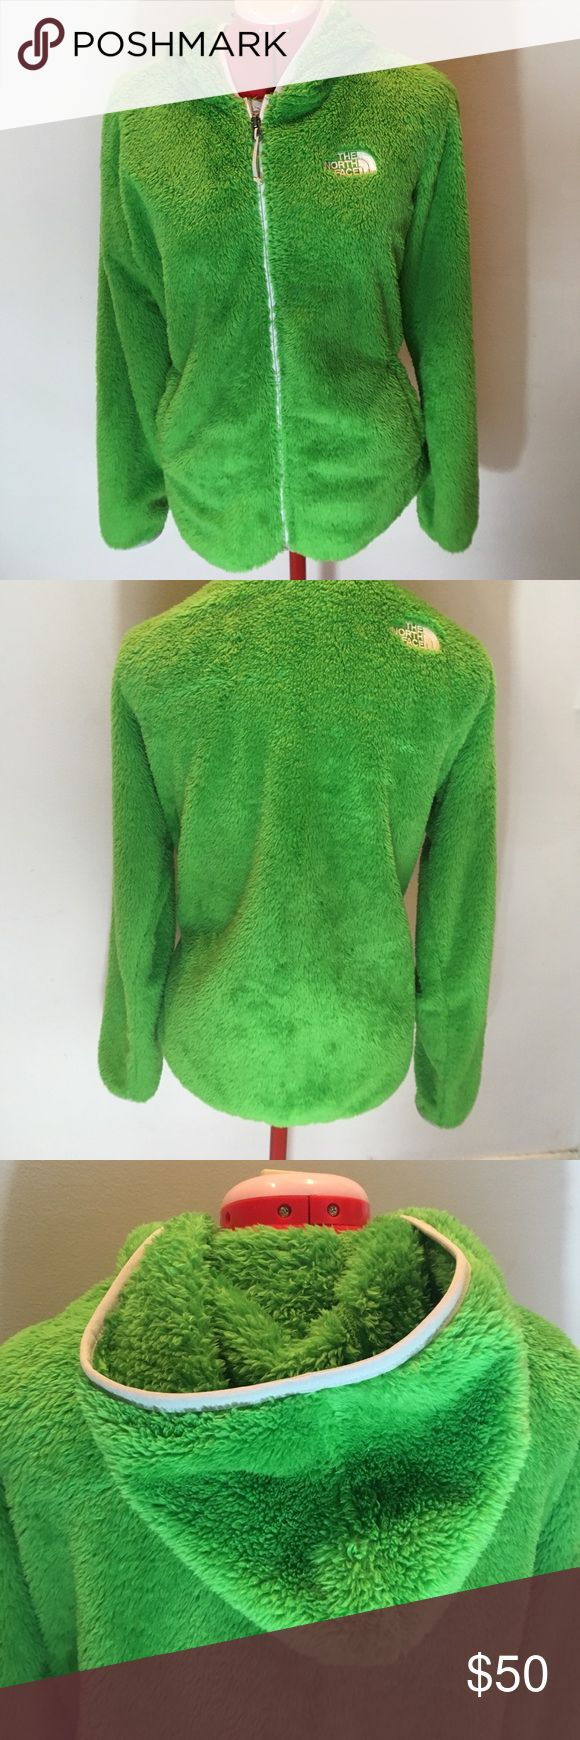 {{The North Face}} Woman's green zip up hoodie Authentic  The North Face XL Perfect condition  Soft & fuzzy The North Face Jackets & Coats